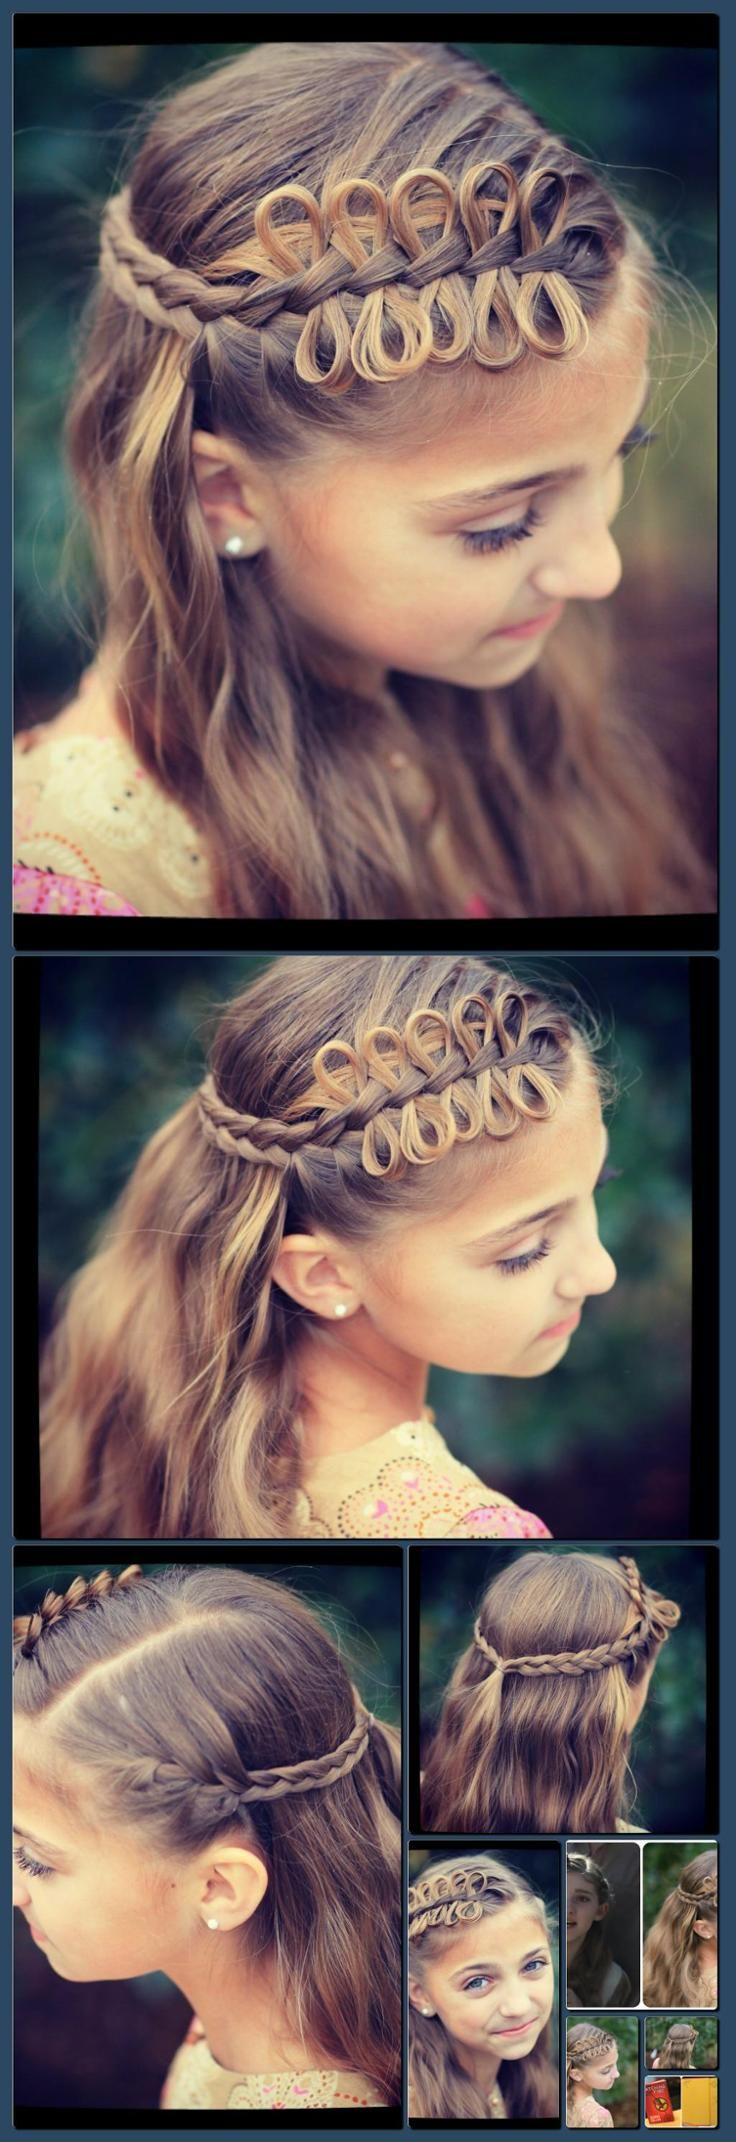 best 25+ hairstyles games ideas on pinterest | braid hairstyles